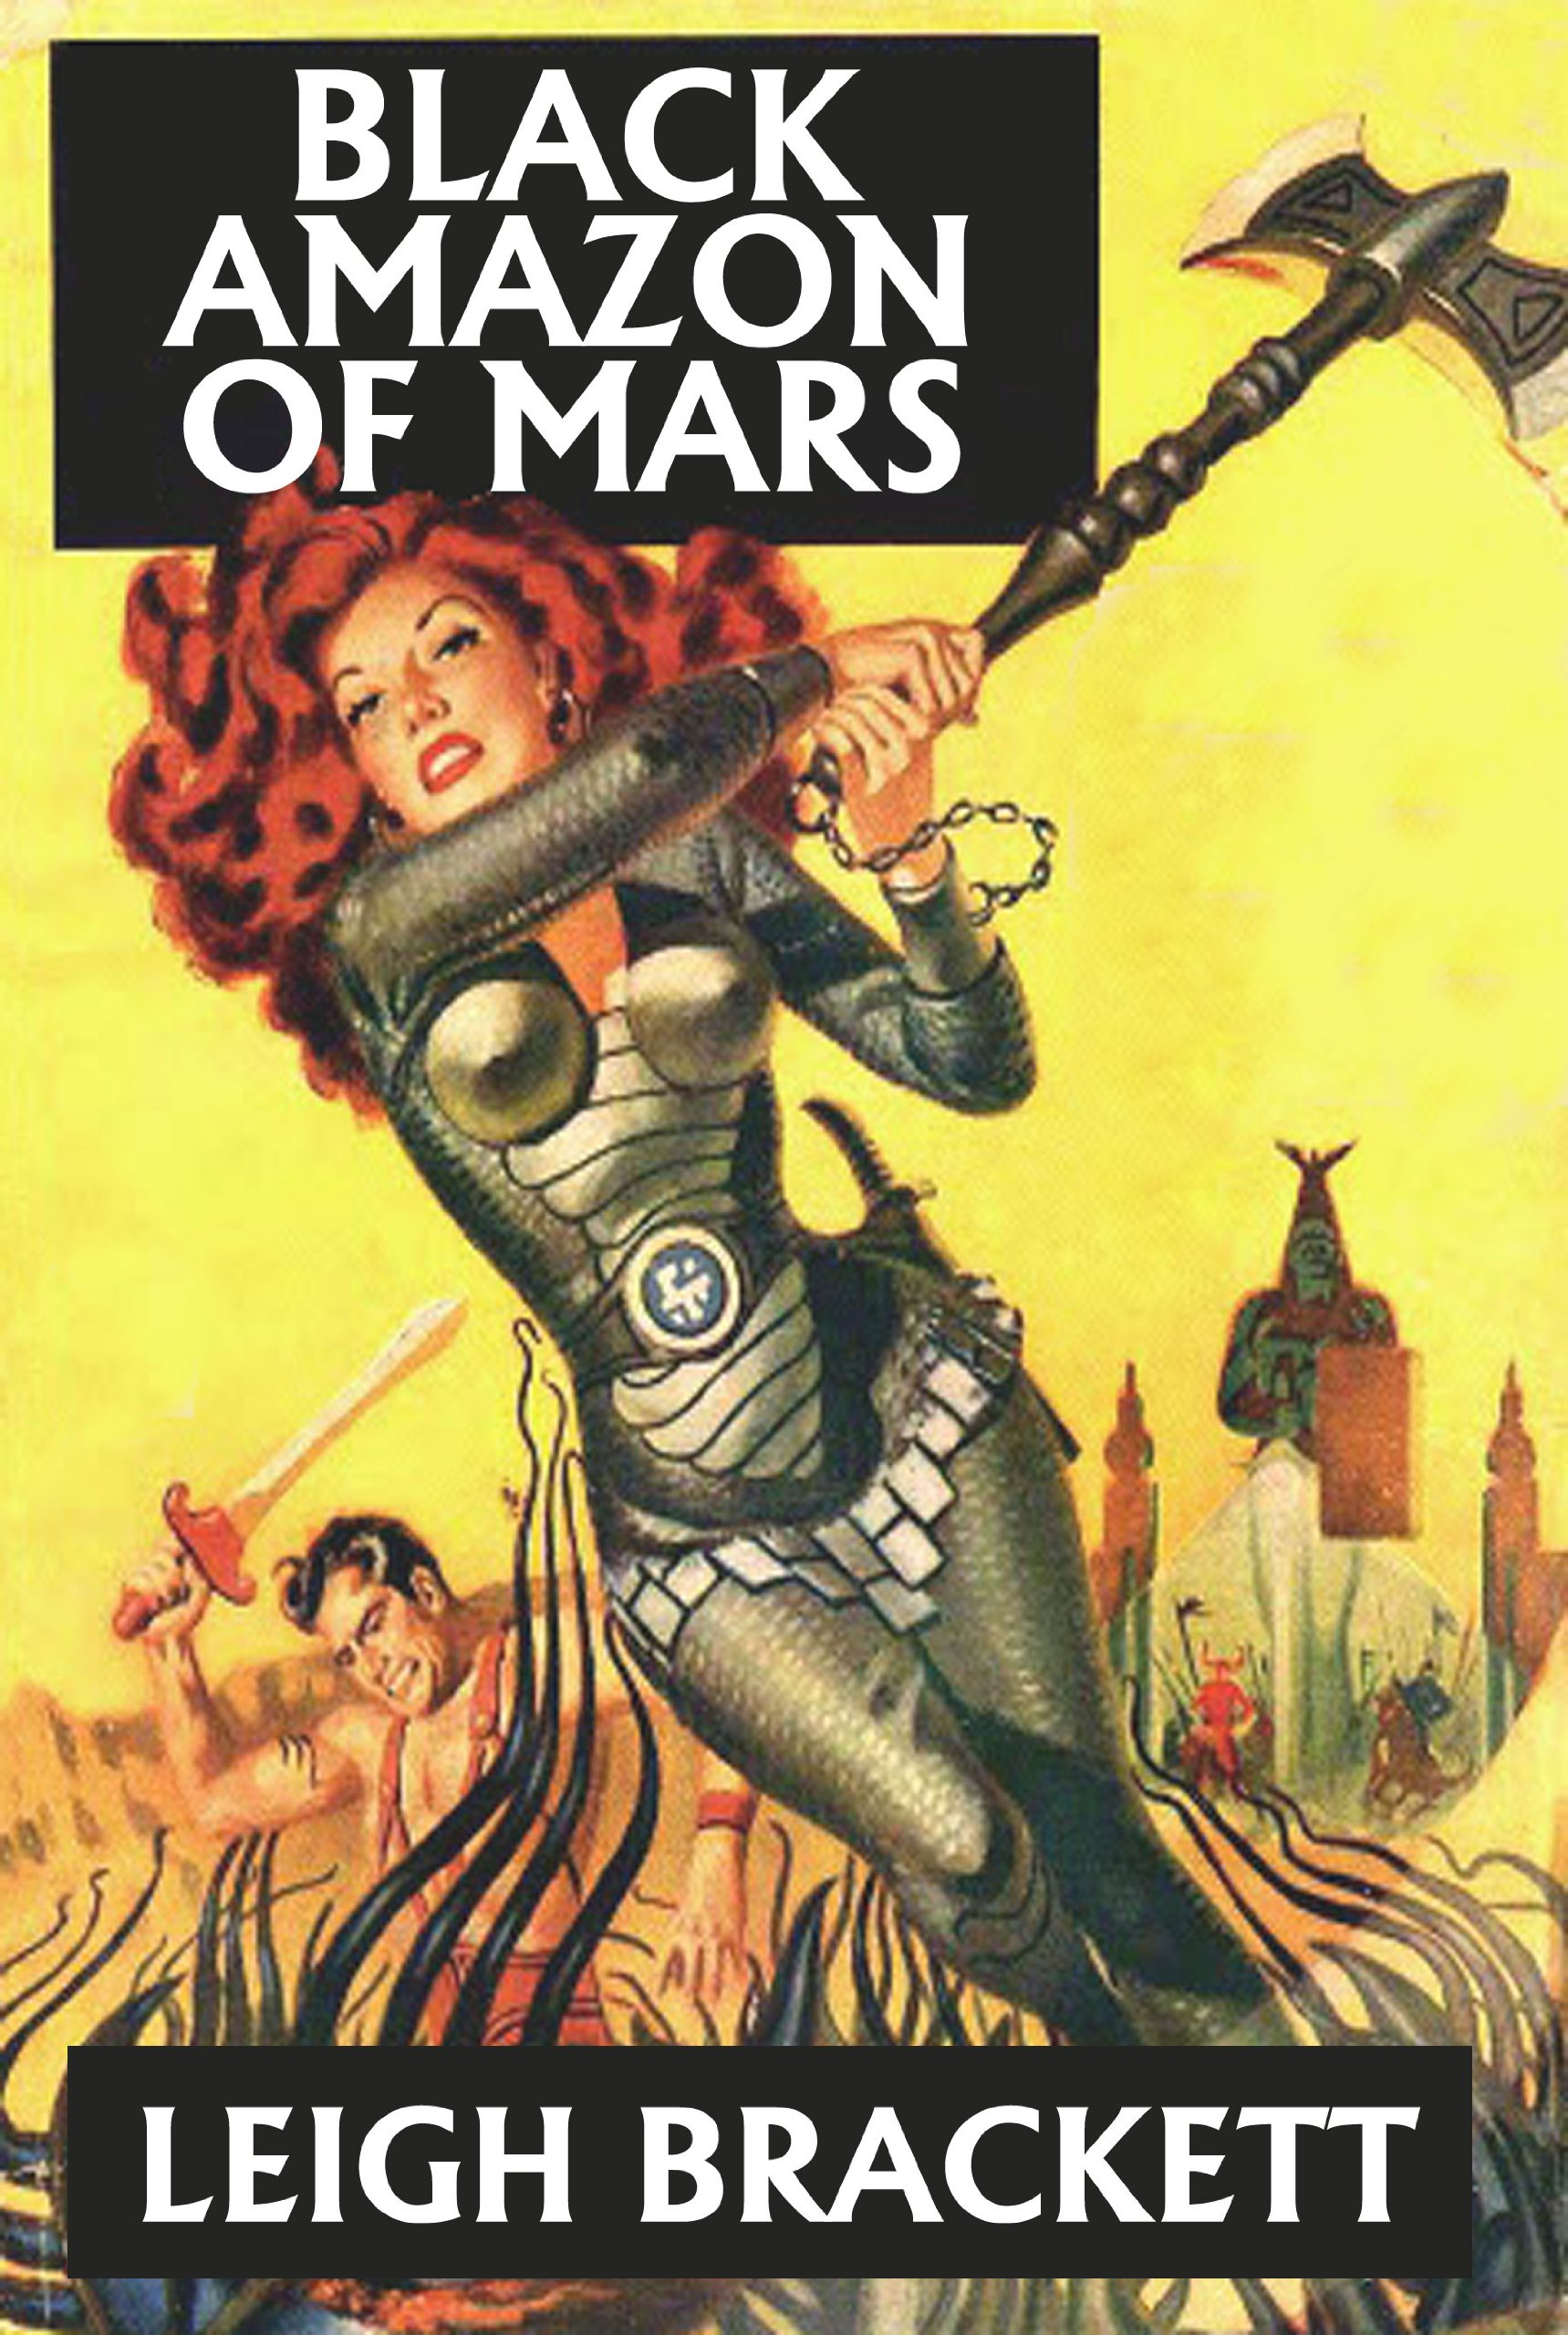 """Black Amazon of Mars"" by Leigh Brackett."